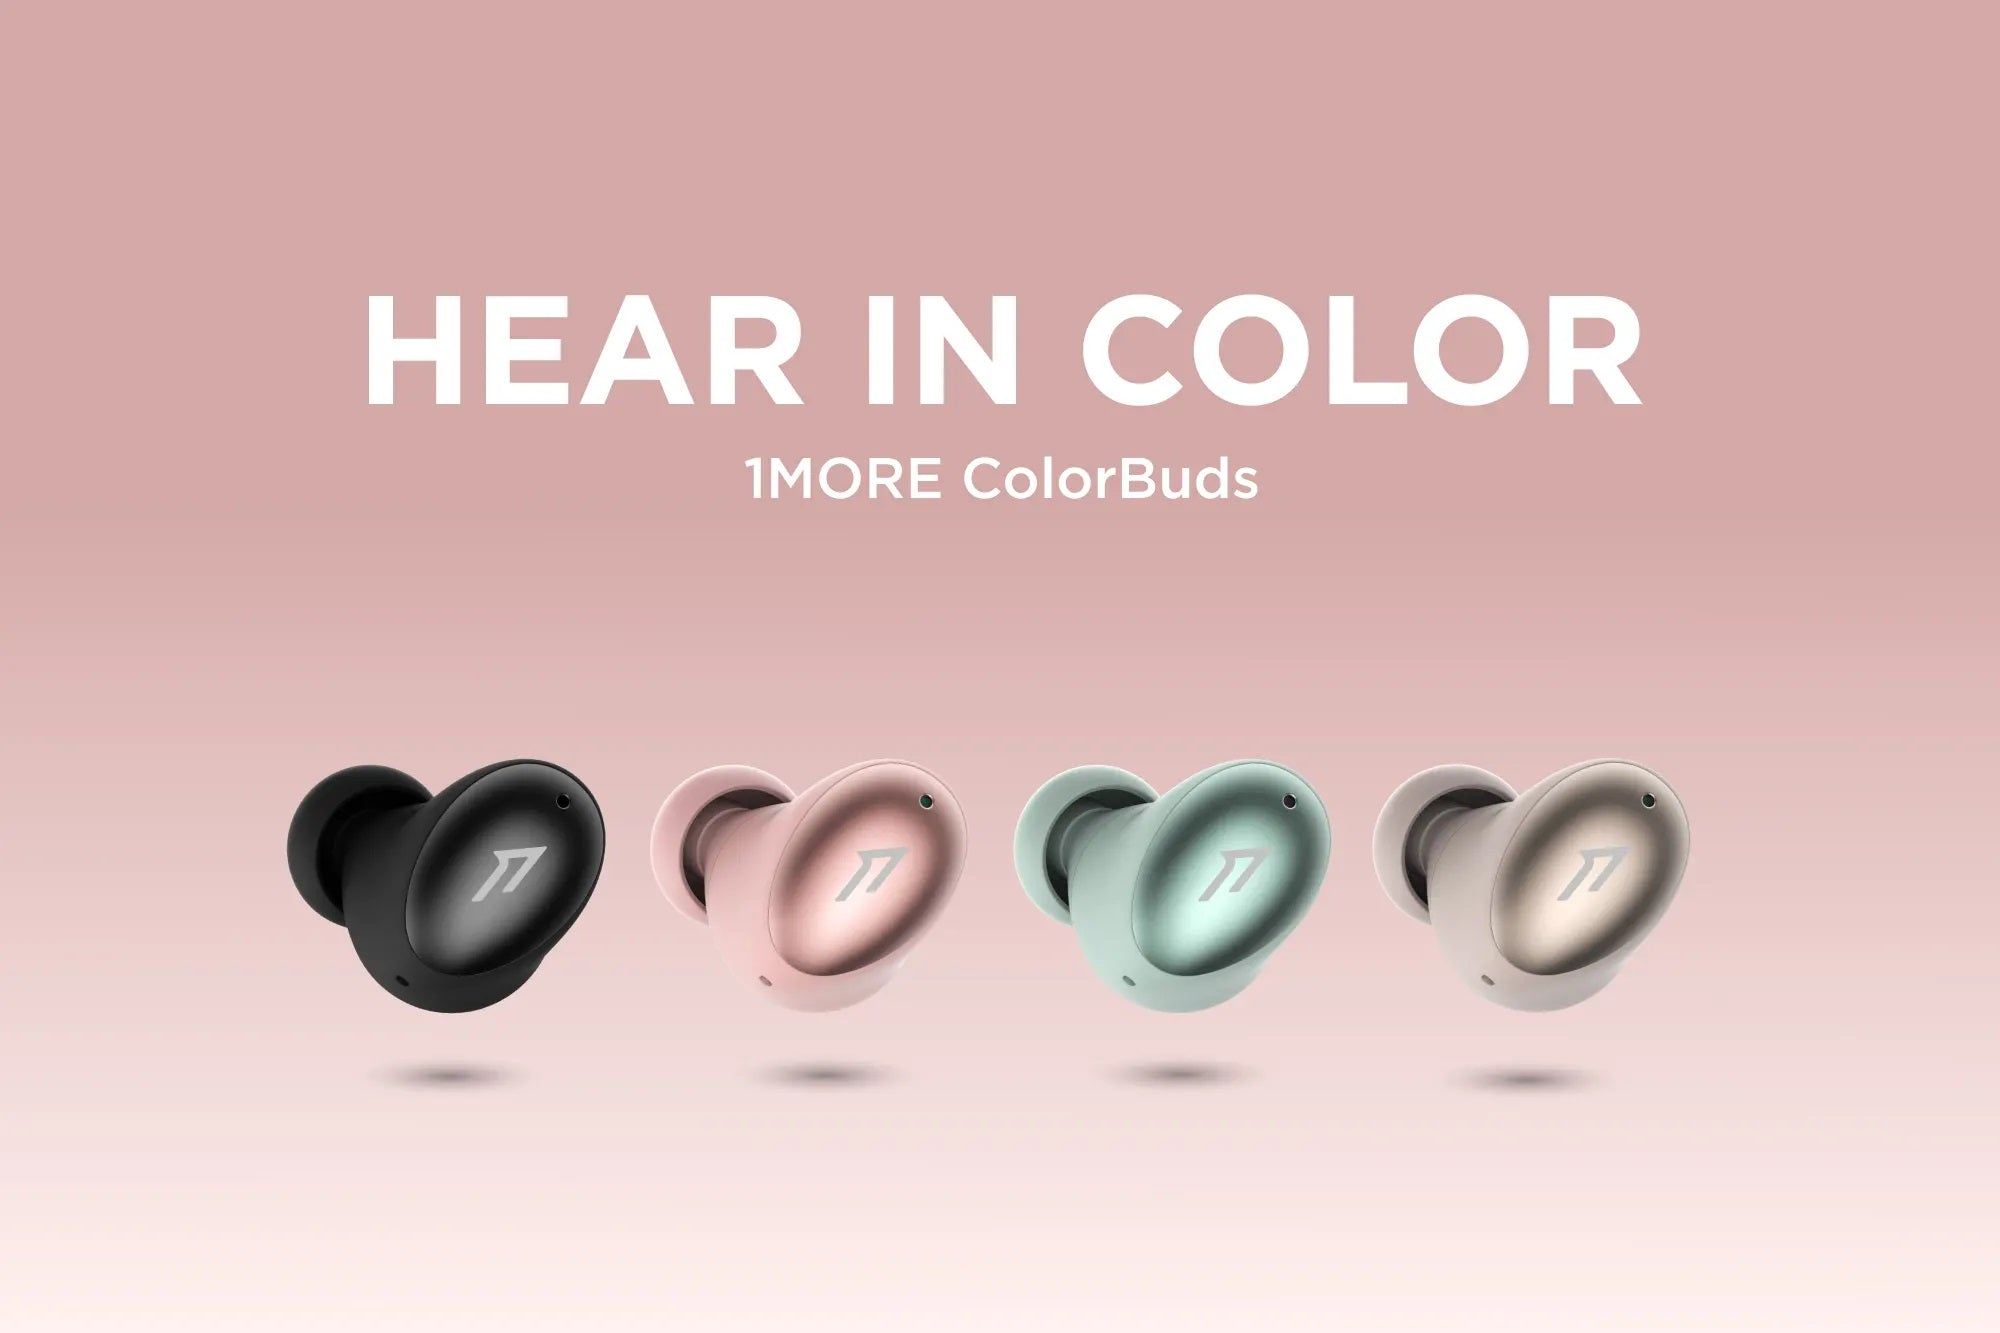 1More ColorBuds True Wireless Earbuds - Hear In Color